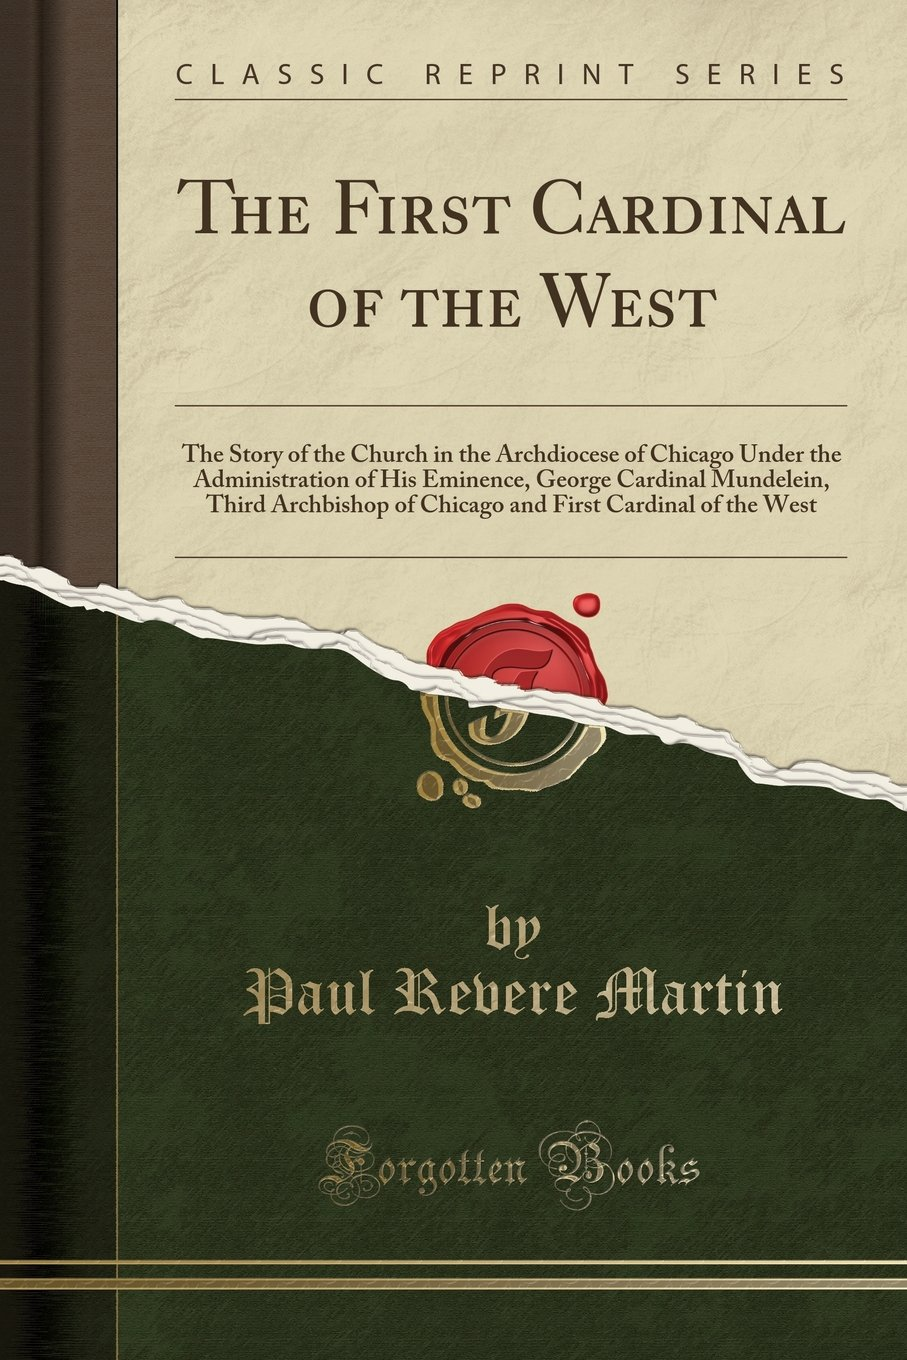 Download The First Cardinal of the West: The Story of the Church in the Archdiocese of Chicago Under the Administration of His Eminence, George Cardinal ... First Cardinal of the West (Classic Reprint) ebook